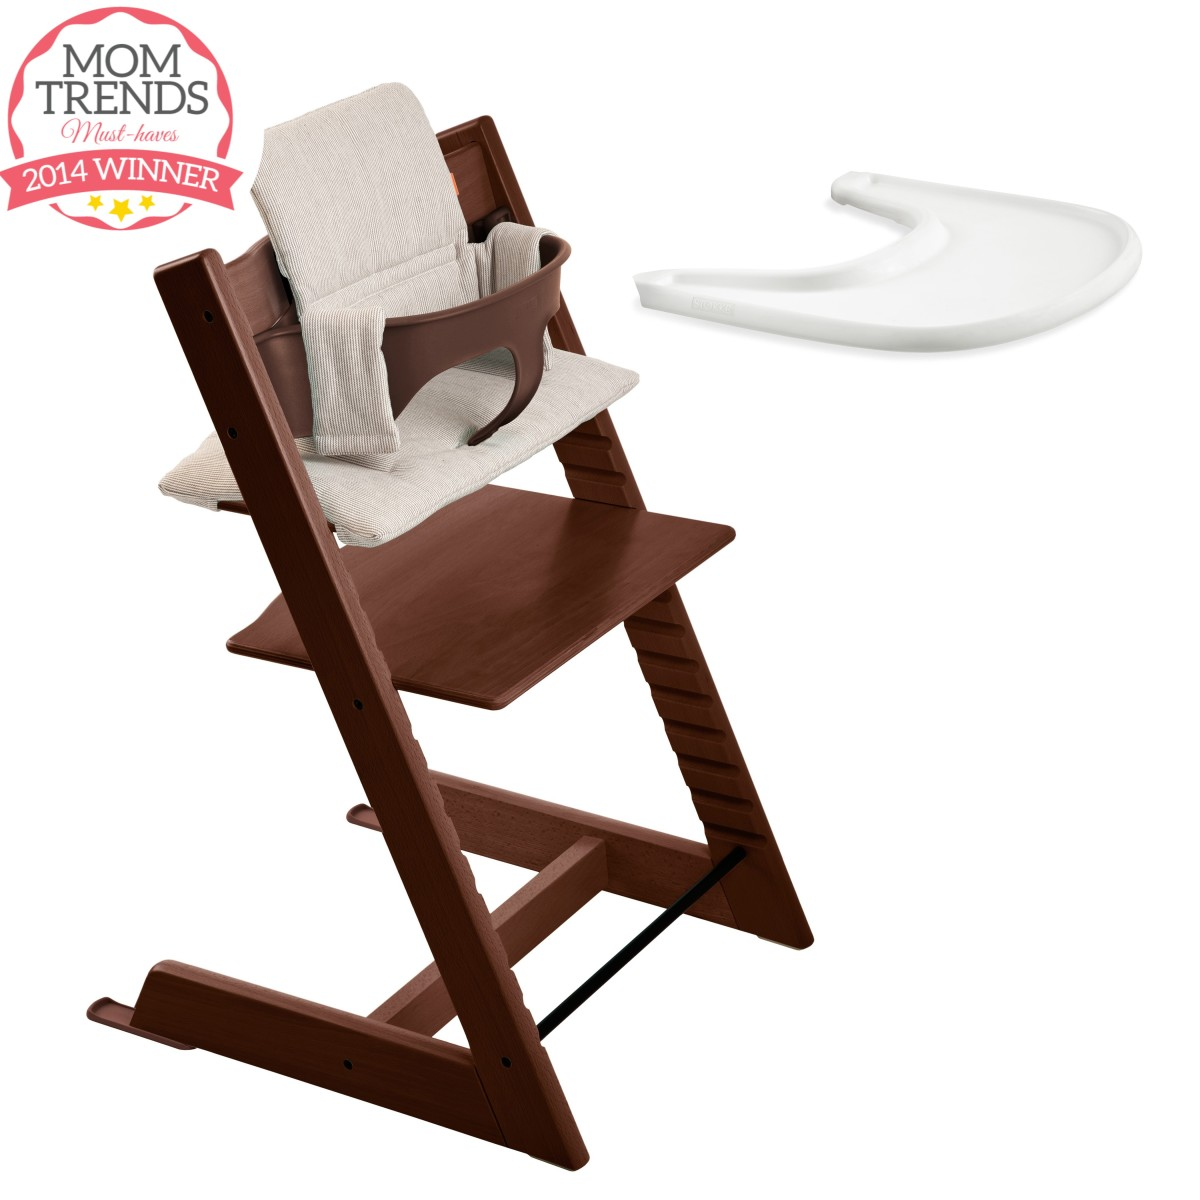 momtrends must-haves: high chairs - momtrends